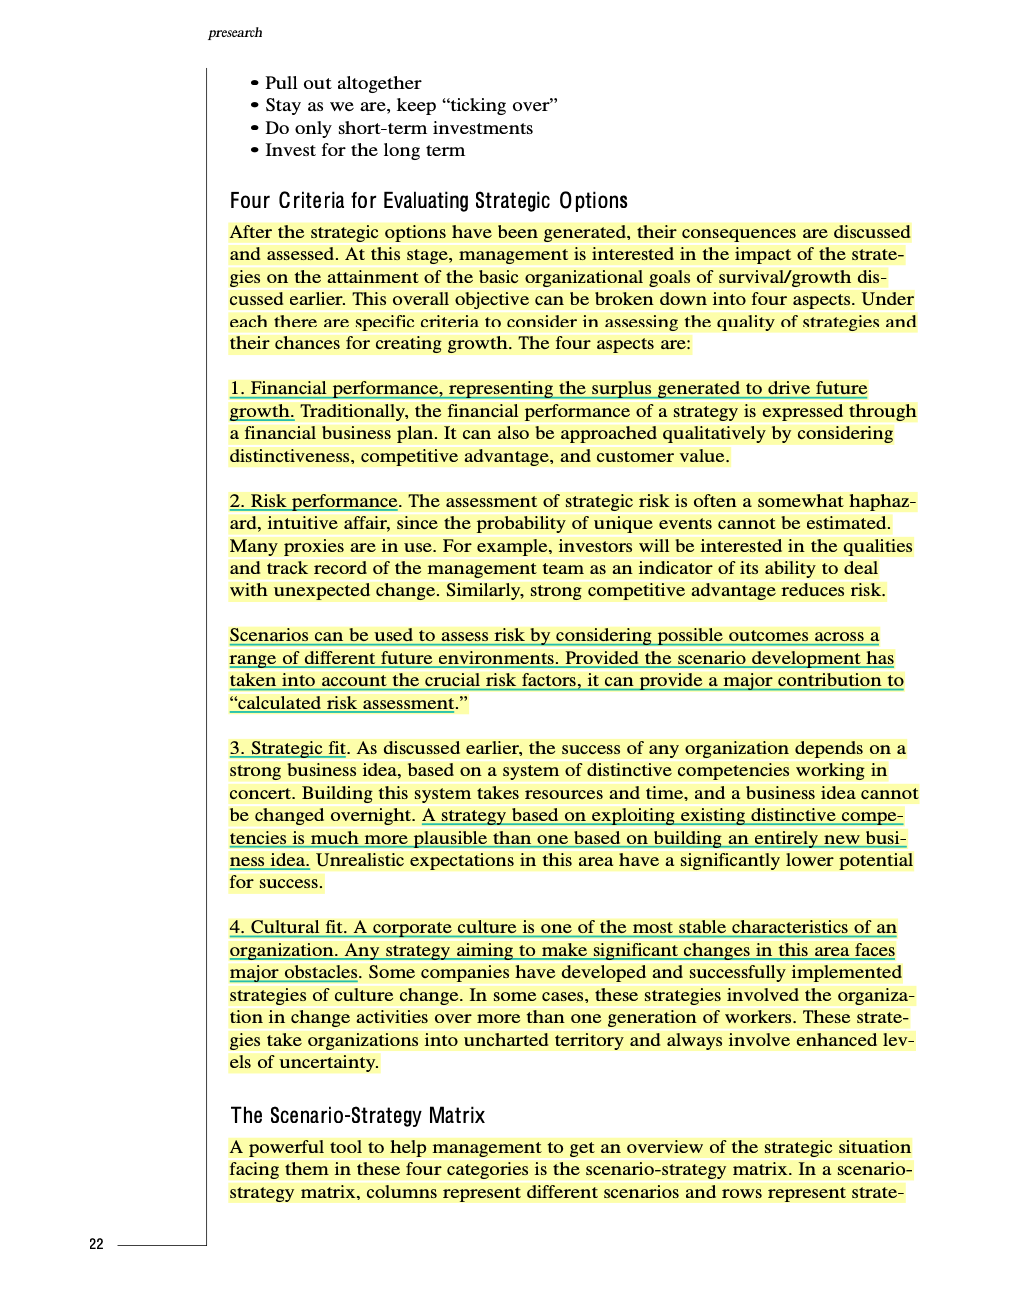 """I tend to go a bit overboard on highlighting sometimes. (This is from van der Heijden's """"Scenarios, Strategy, and the Strategy Process"""", 1997.)"""